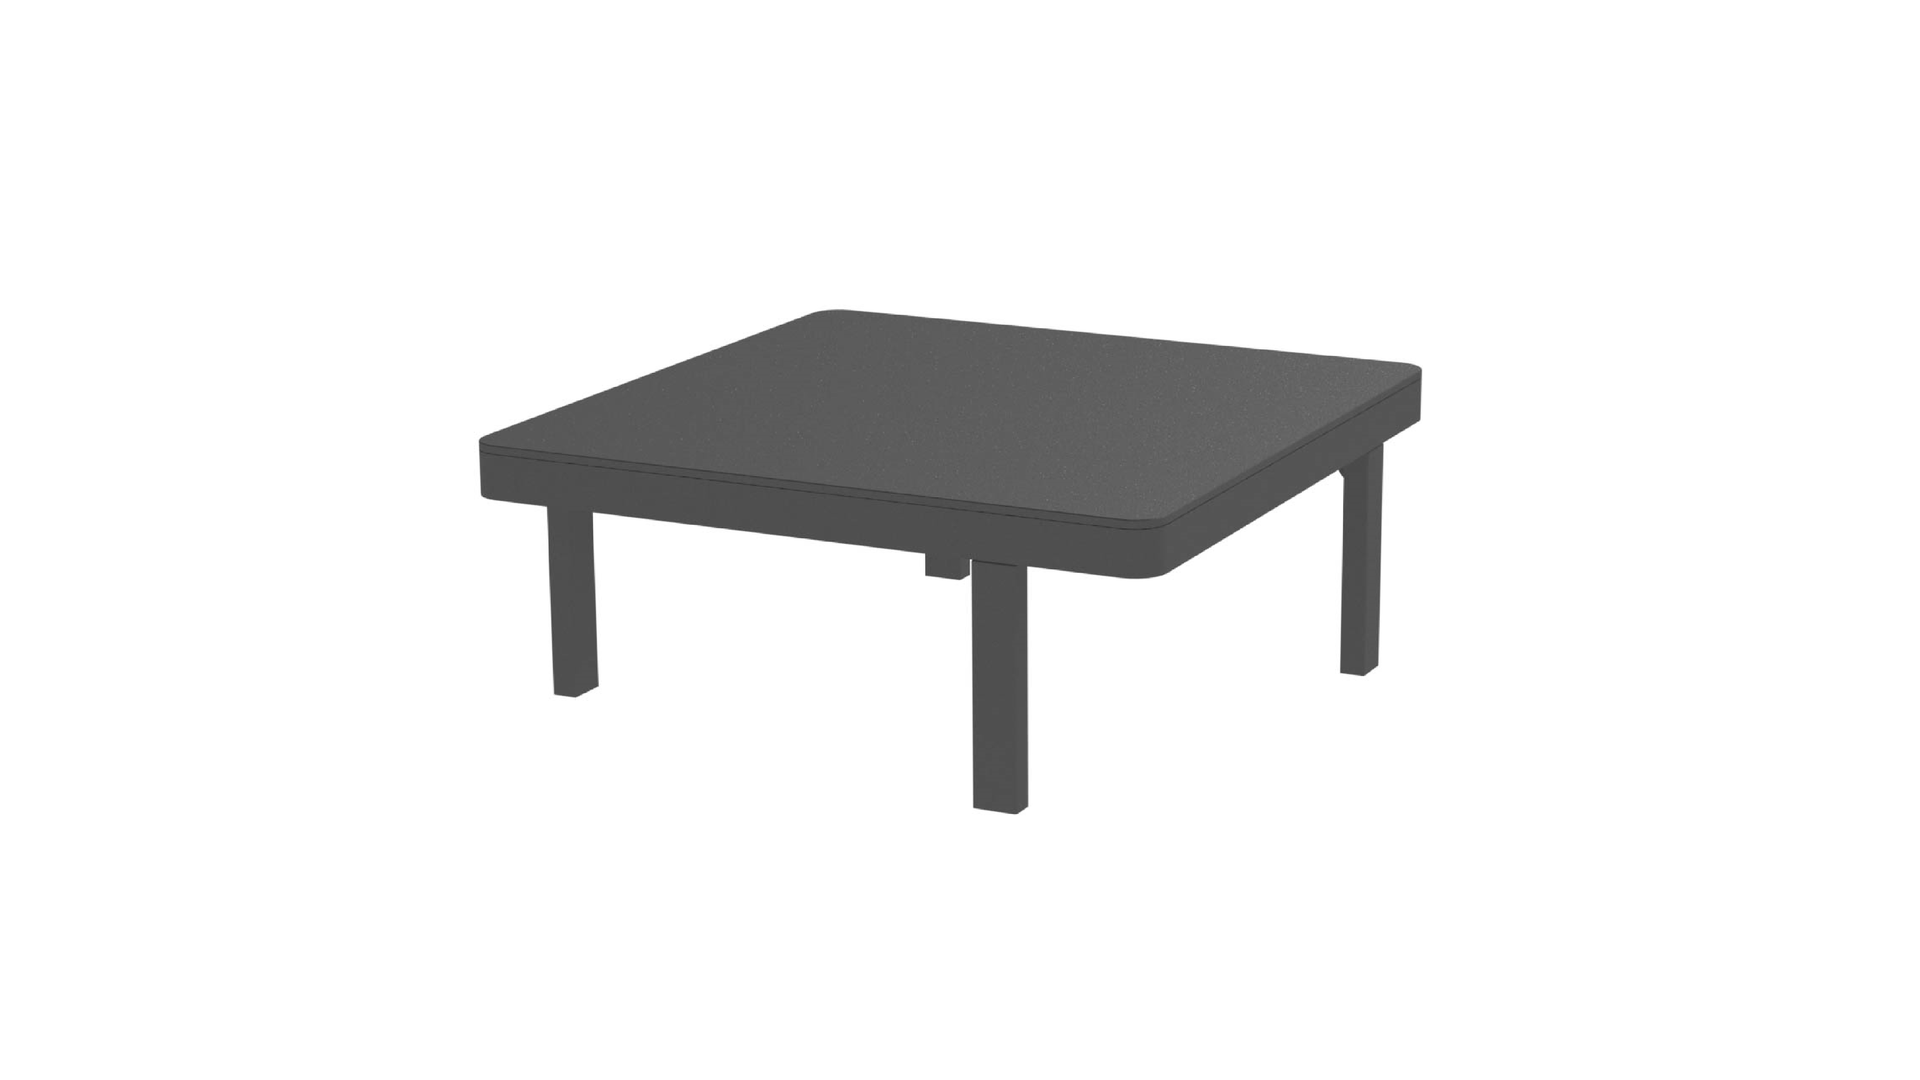 Alura lounge 80 table.png